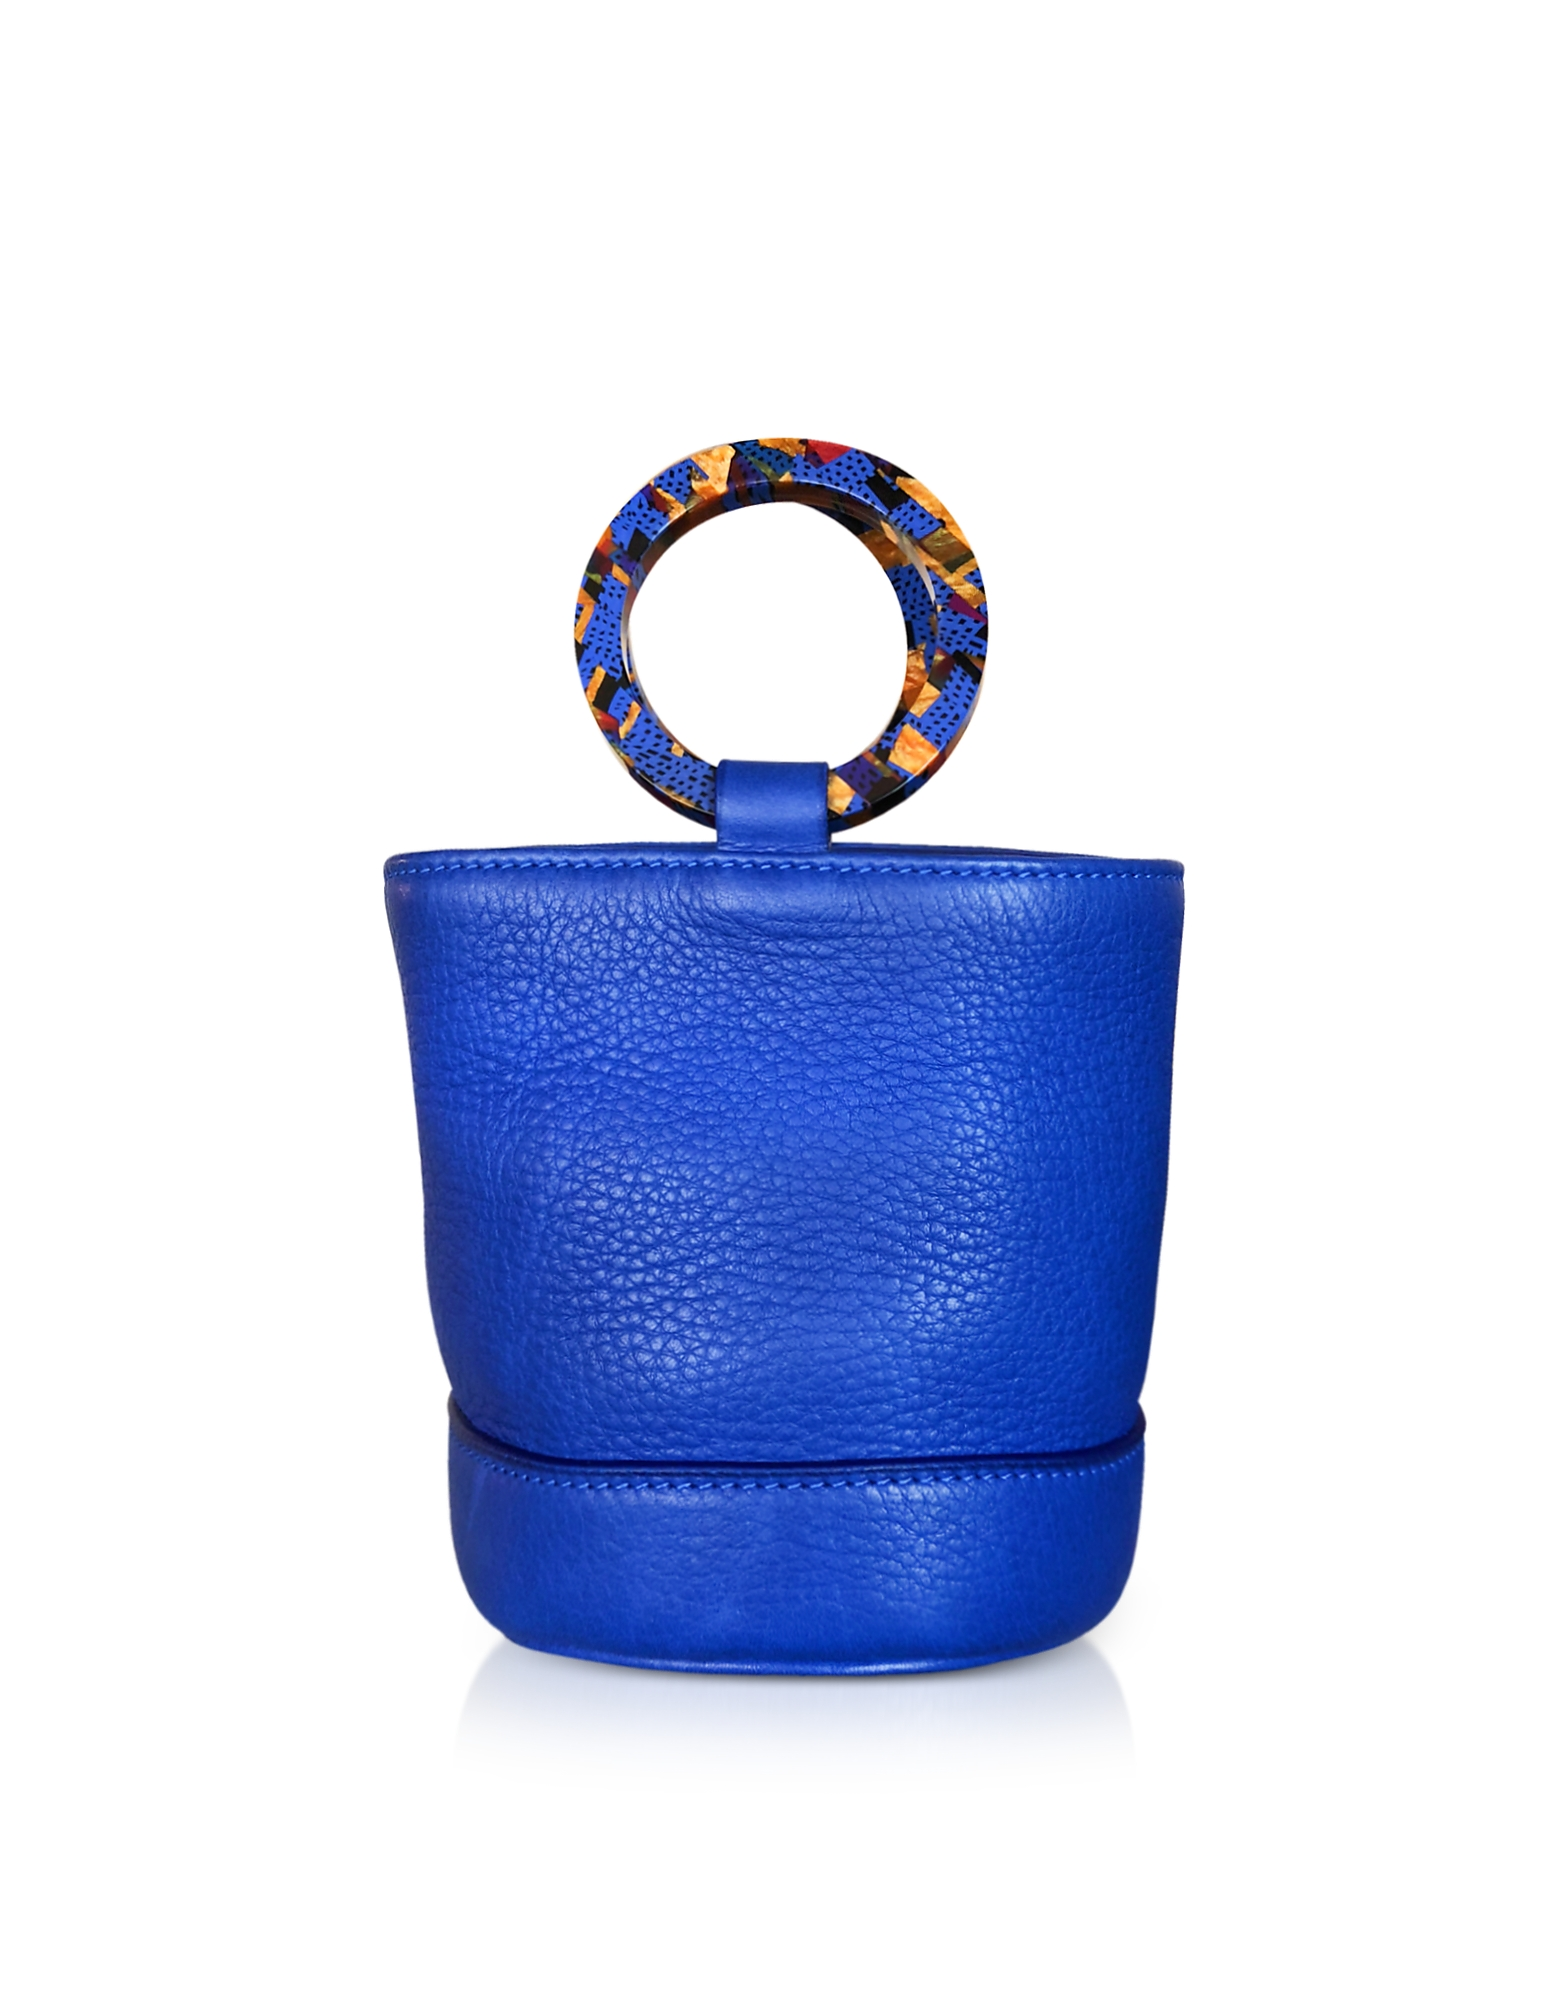 Simon Miller Handbags, Cobalt Blue Leather Bonsai 15cm Bag